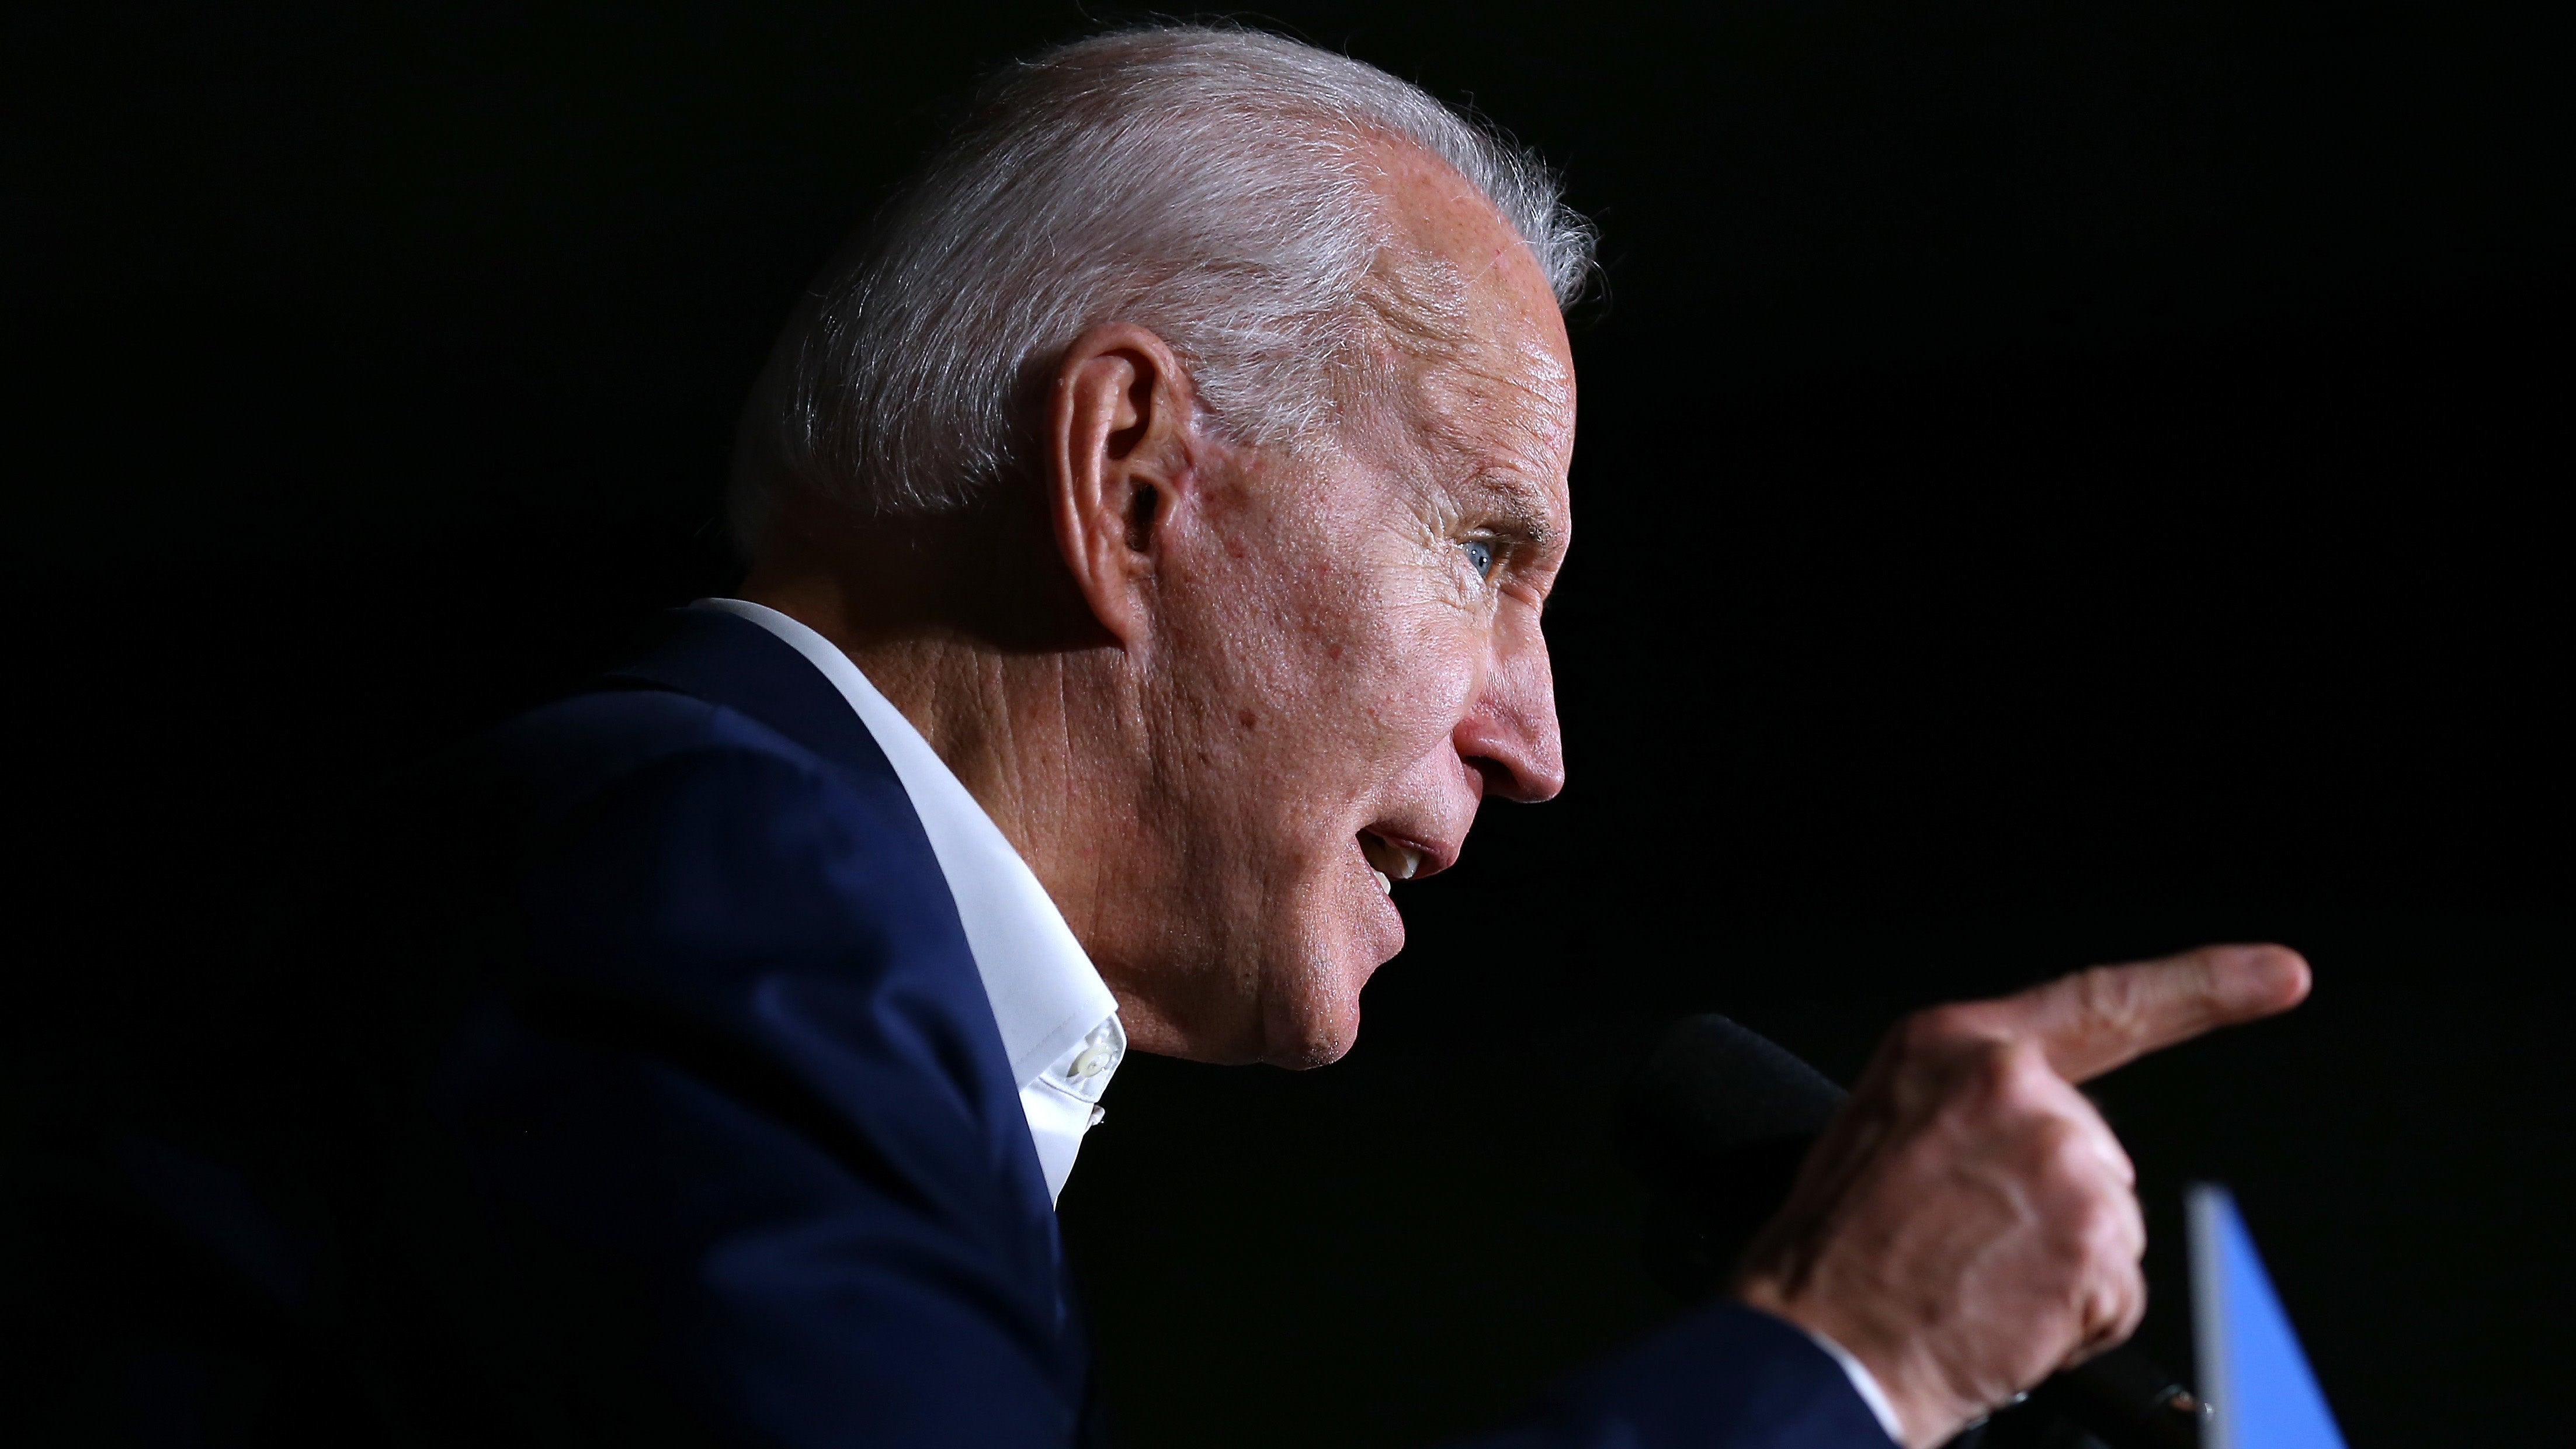 I'm A Political Scientist. This Is Why Climate Activists Need To Keep Turning The Heat Up On Joe Biden